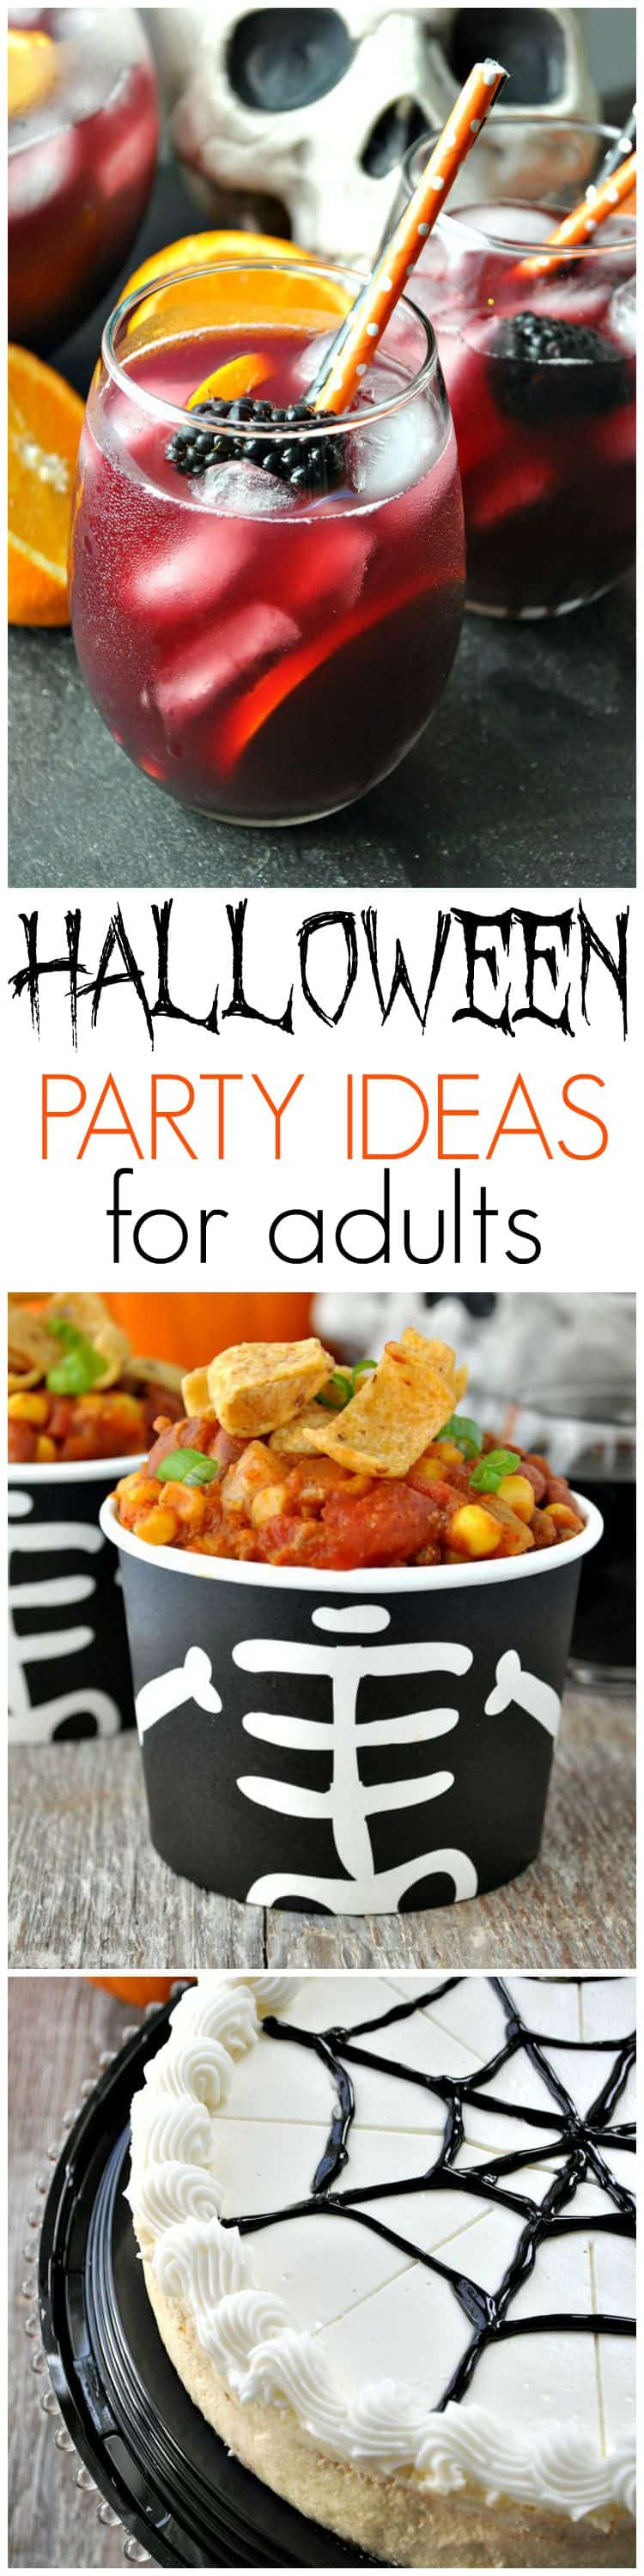 Halloween Party Ideas for Adults